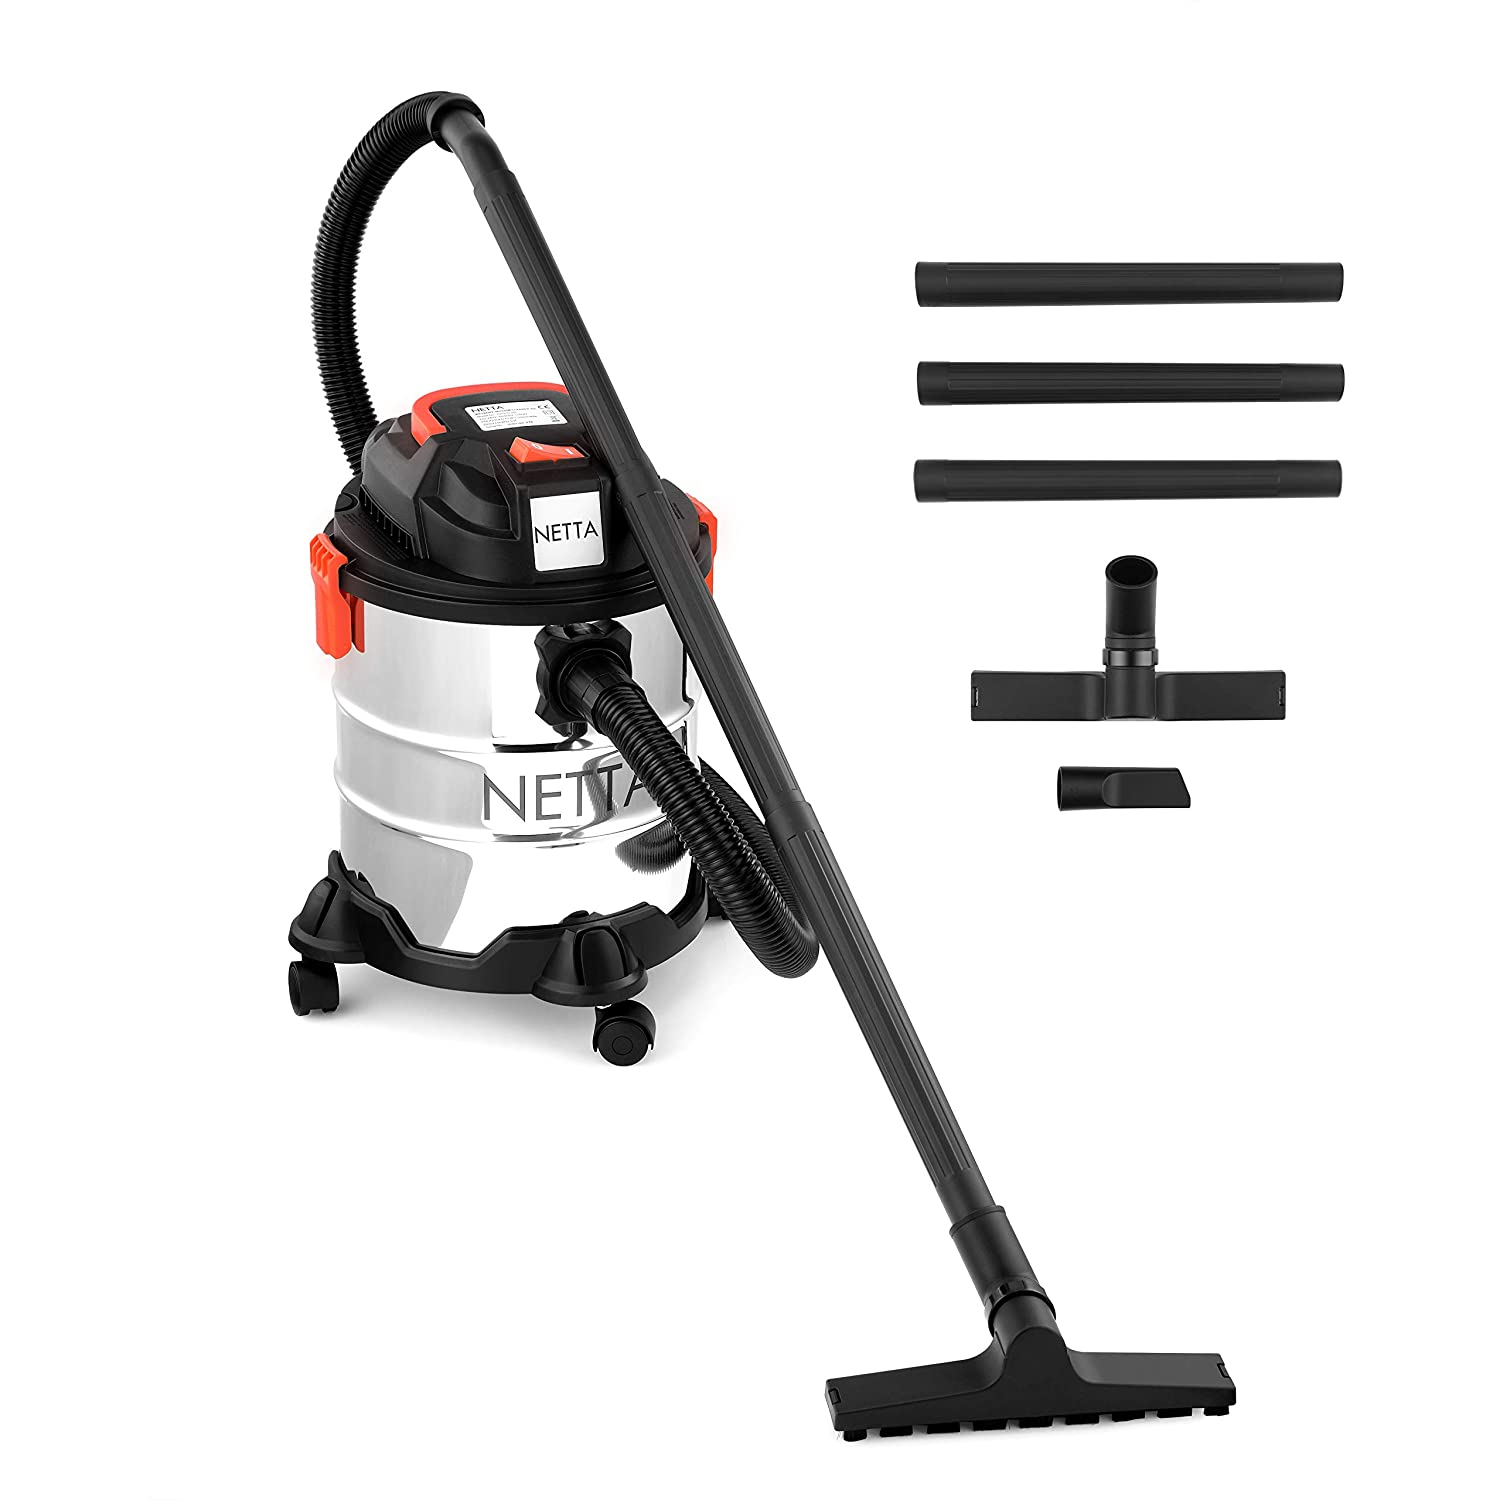 NETTA 1000W 20L Wet and Dry Vacuum Cleaner With Blow Function & Powerful Suction - Stainless Steel Tank